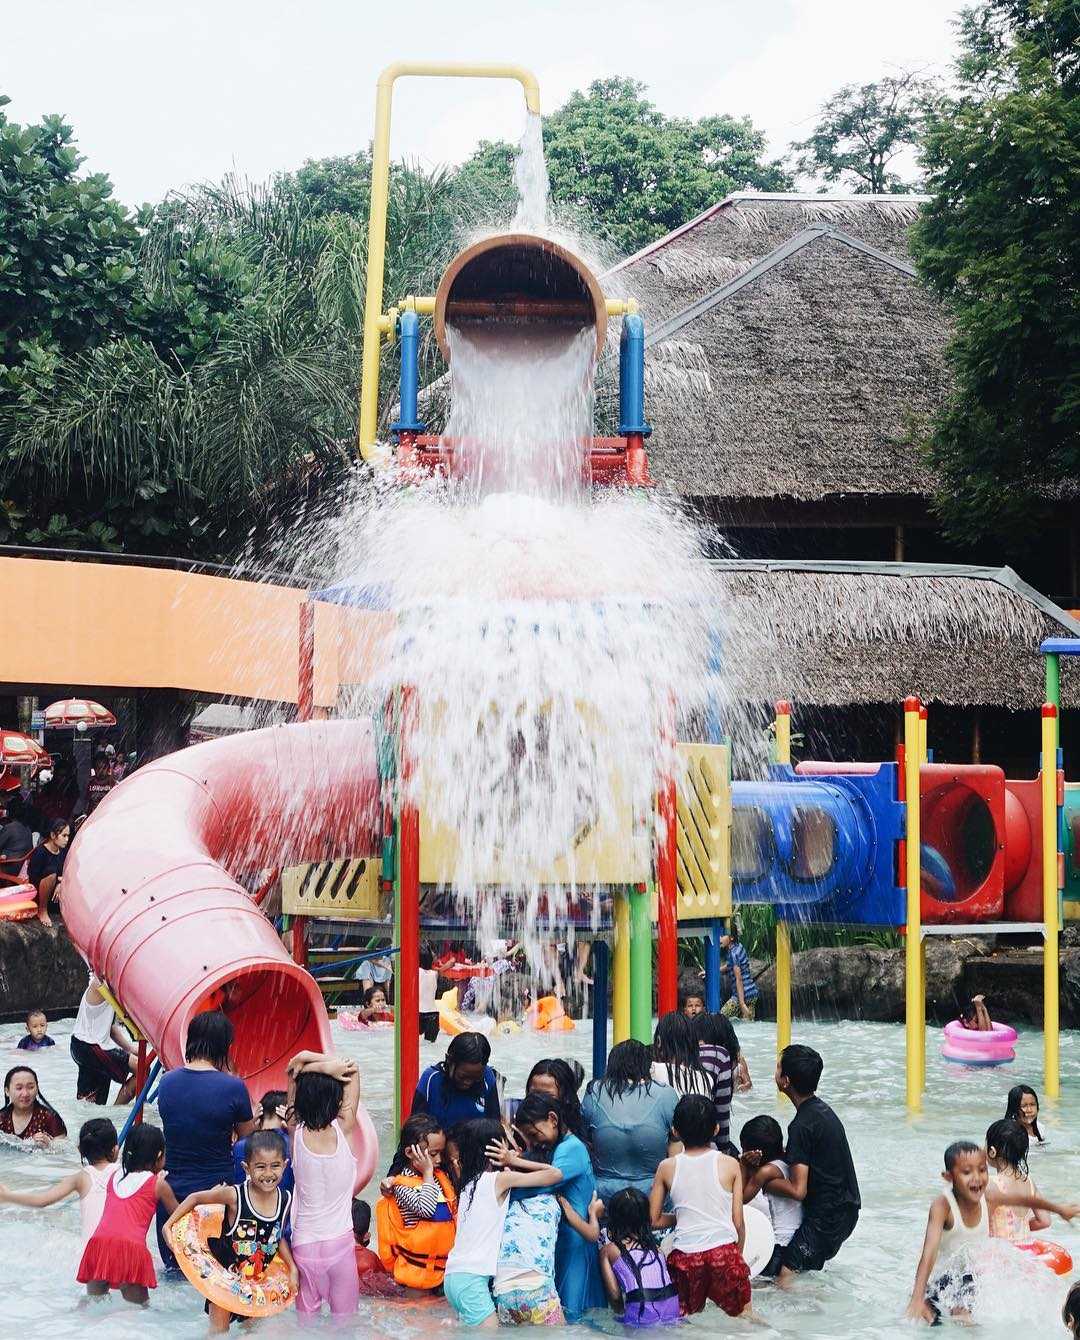 tirtania-waterpark-bogor-city-west-java